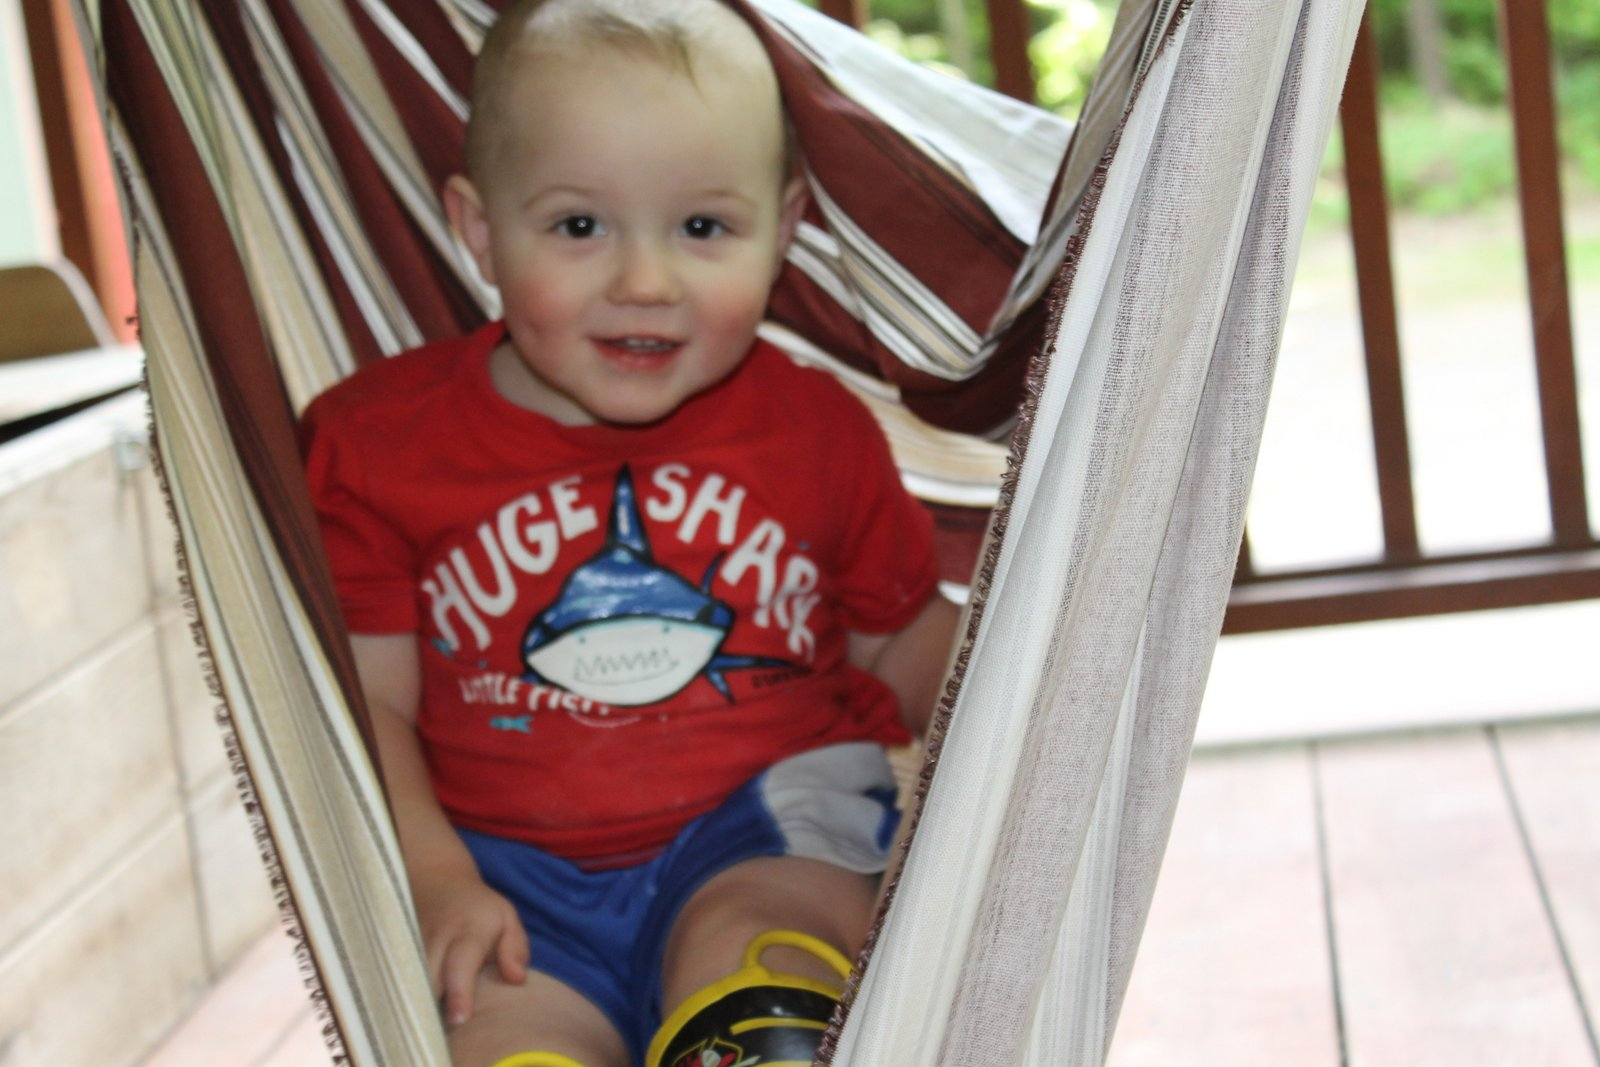 Hammock Chair Instructions High Bar Chairs With Arms Born Imaginative Mama Made Child 39s Brazilian